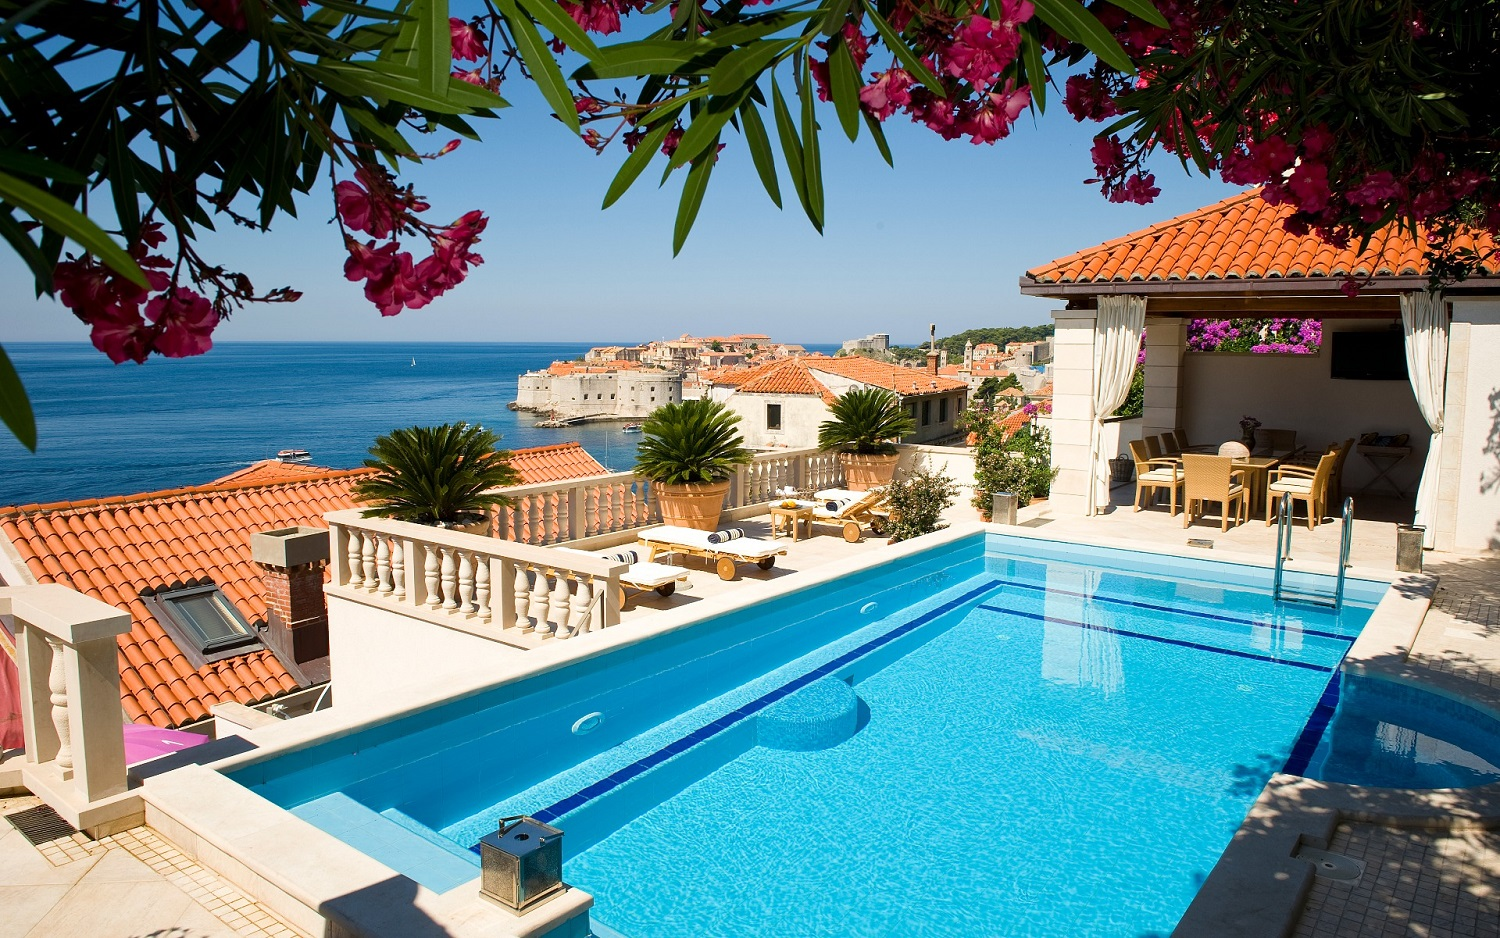 Antropoti-Yachts-Accommodation-Dubrovnik-Croatia1